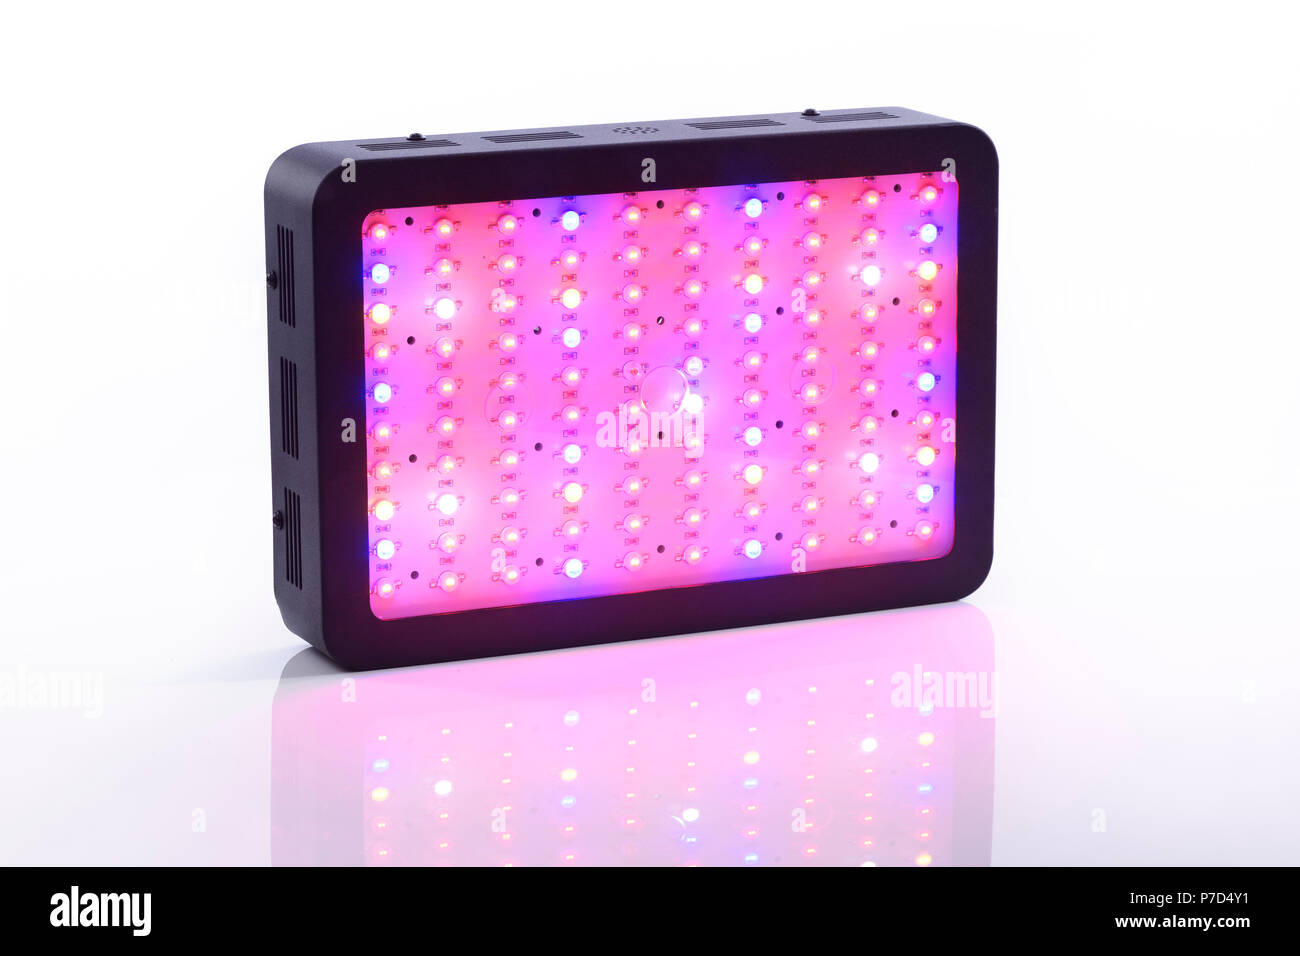 Full-spectrum LED grow light for indoor plant vegetative and flowering growth emitting red, blue, UV and IR spectrum - Stock Image